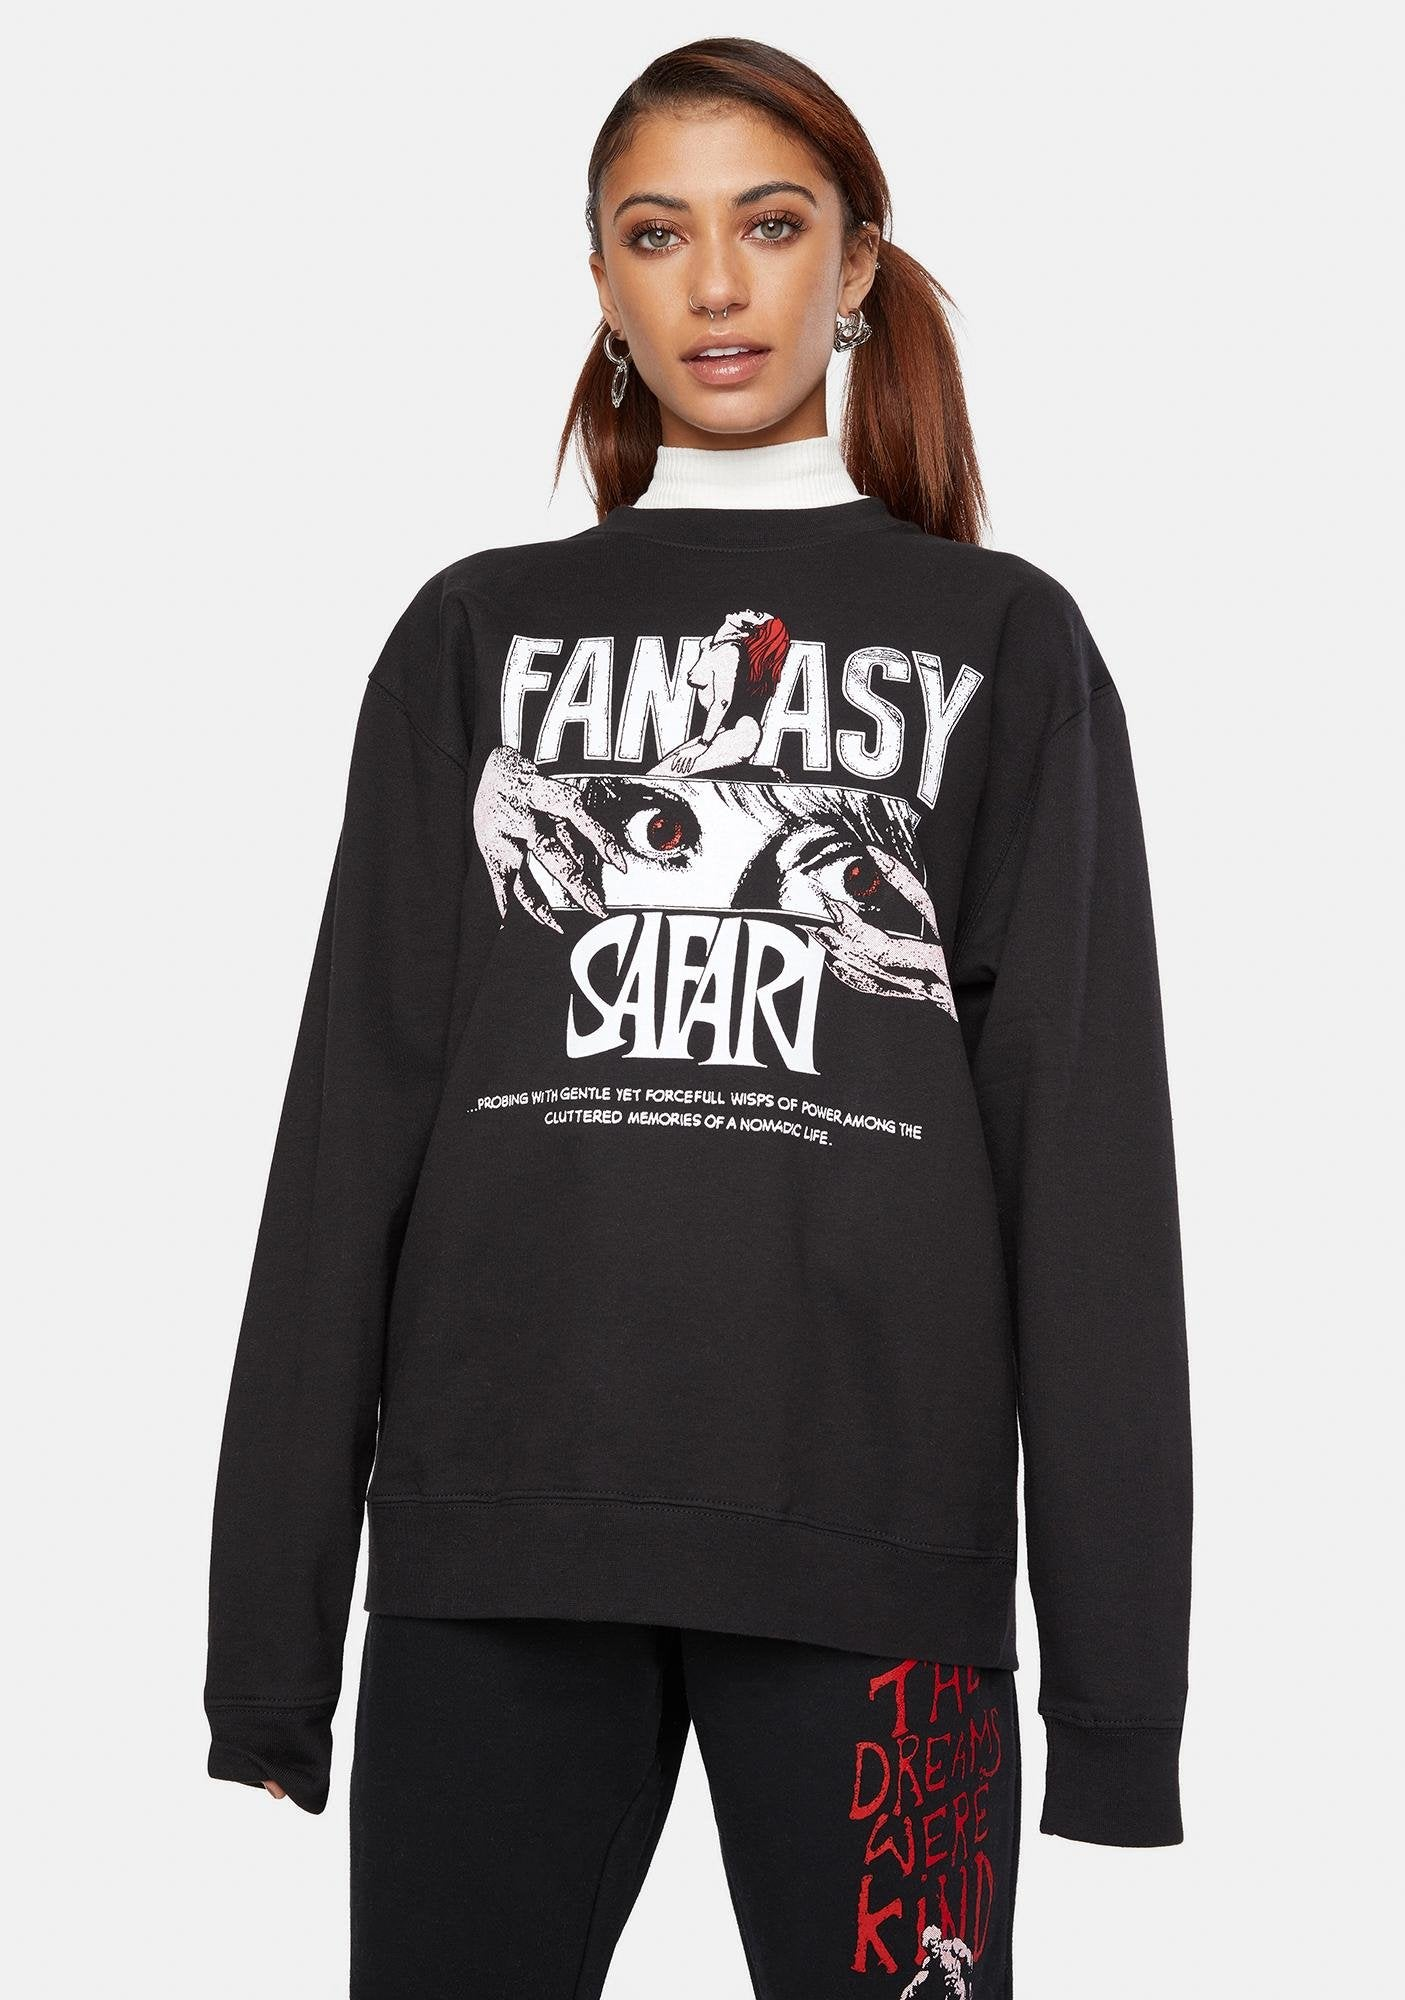 BOW3RY X PLAYDUDE FANTASY SAFARI CREW NECK